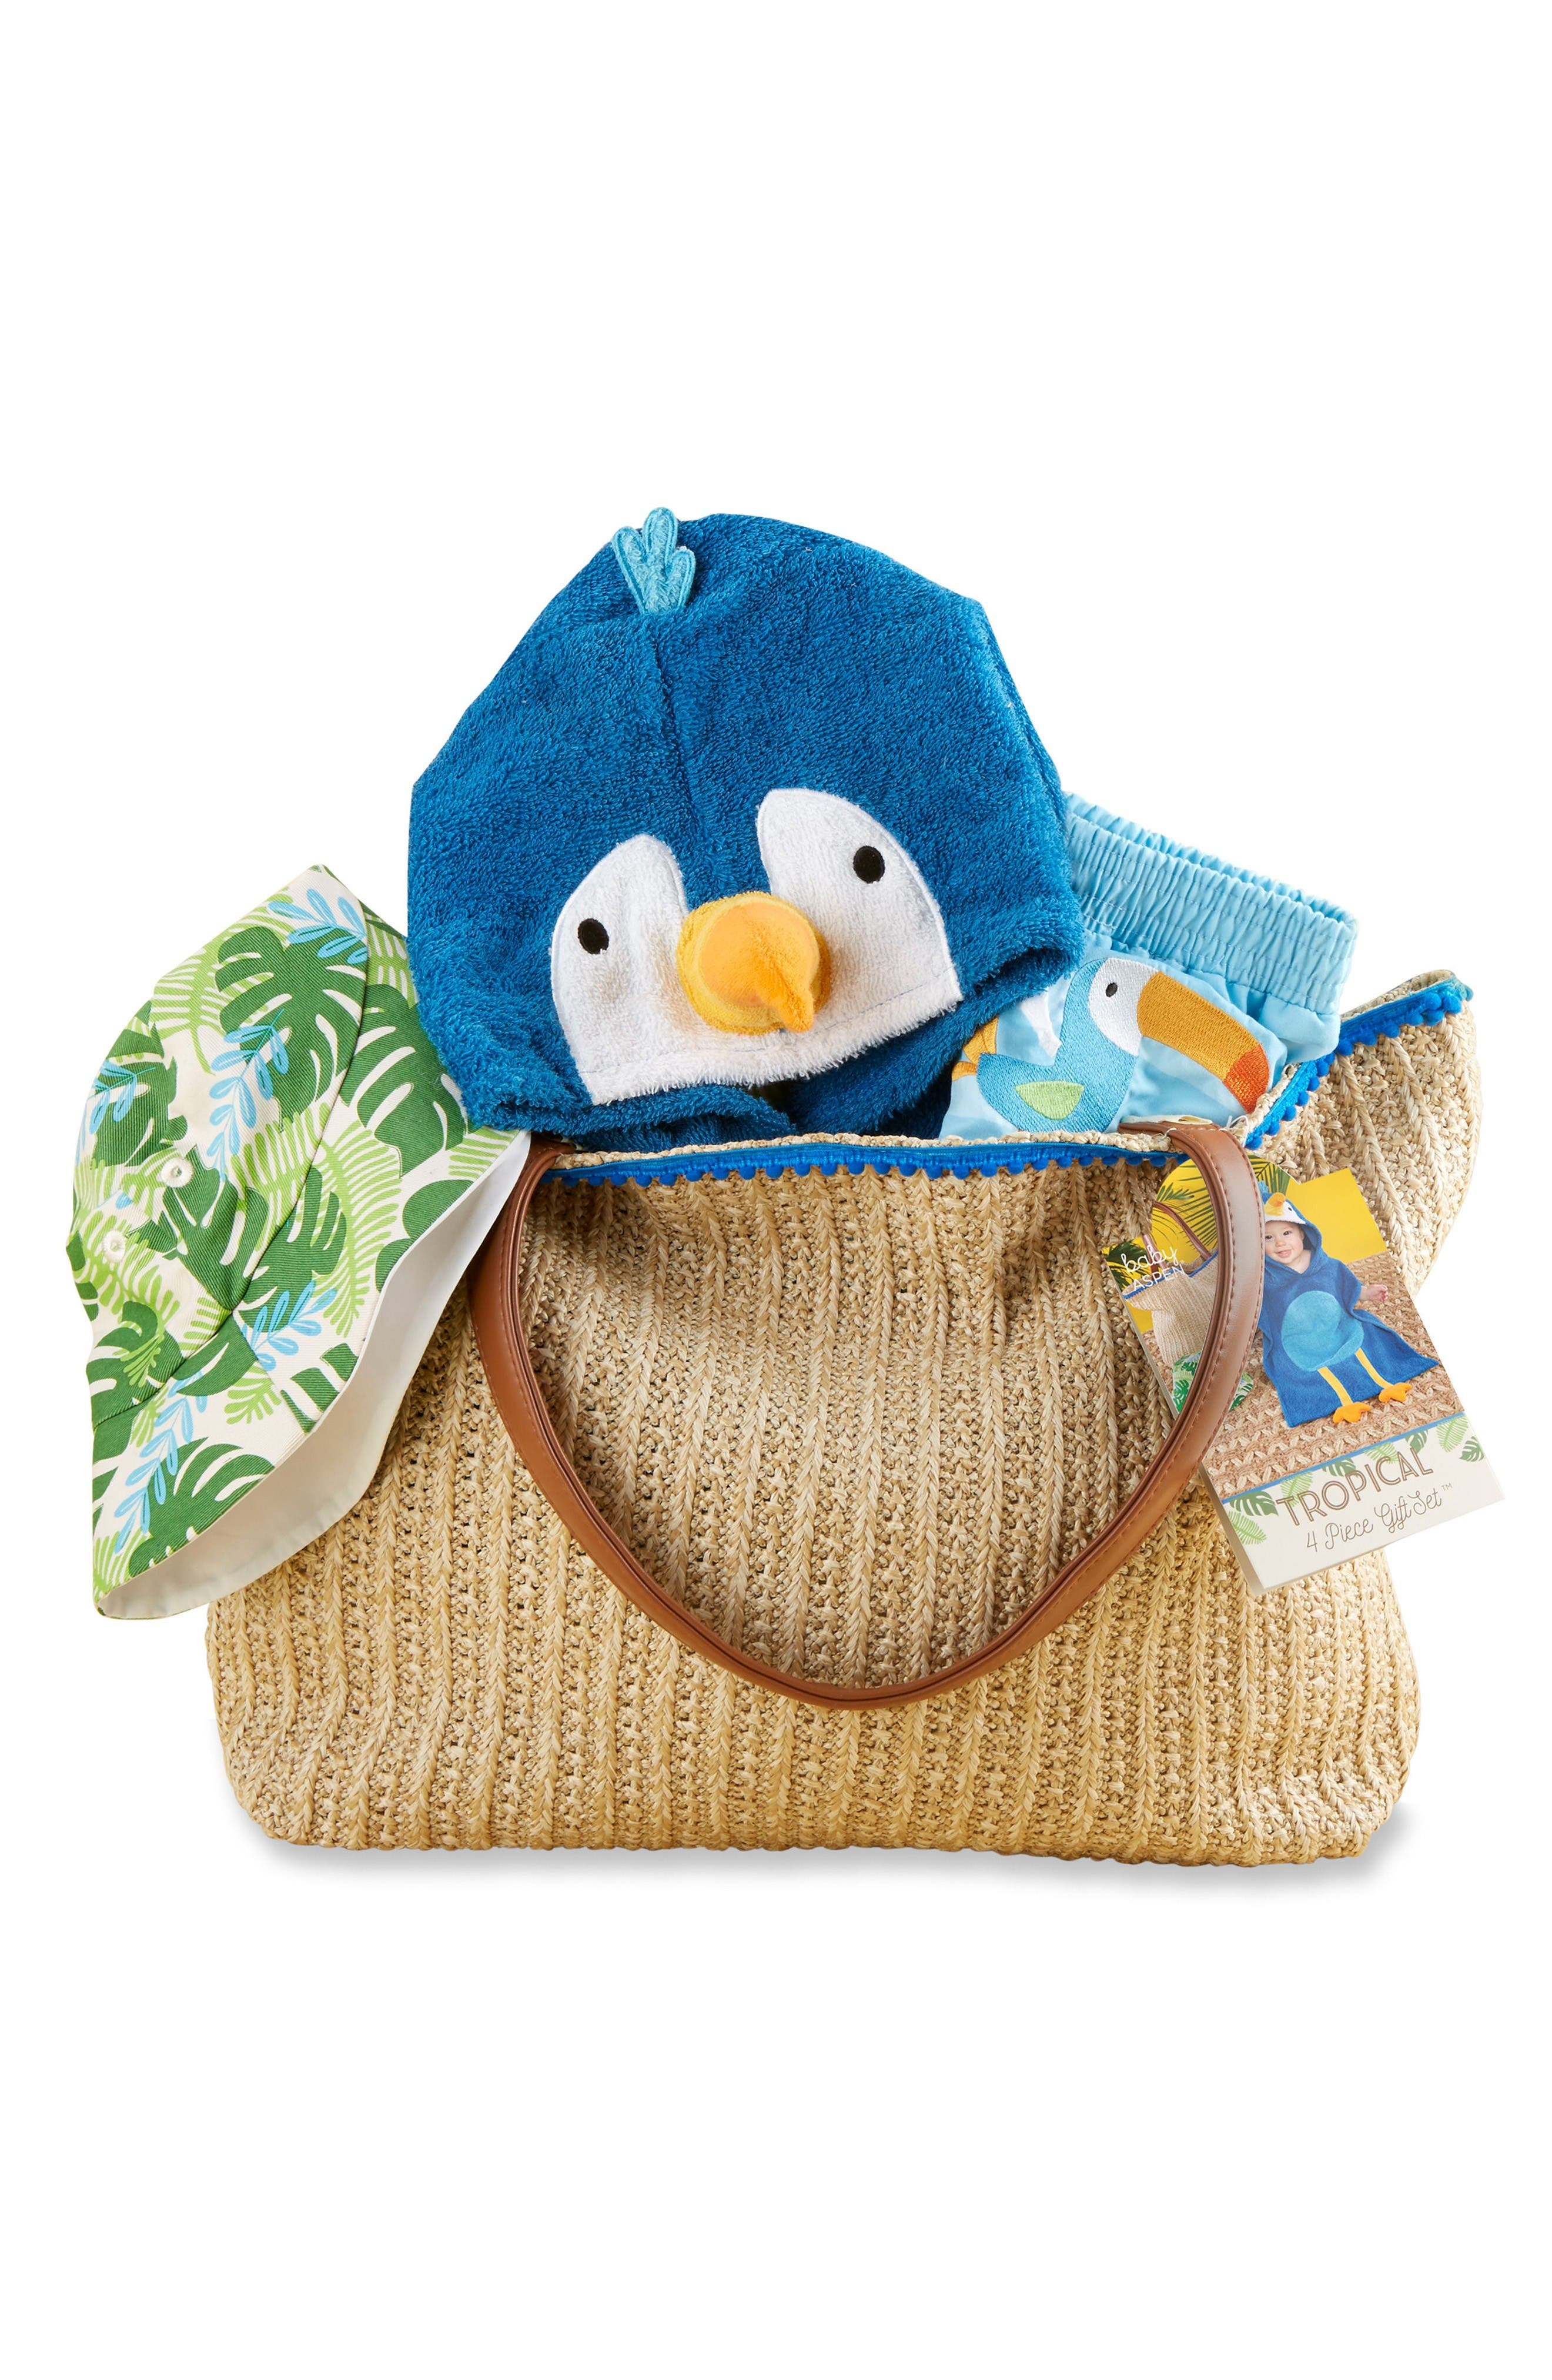 Main Image - Baby Aspen Tropical Hooded Towel, Swimsuit, Sun Hat & Tote Set (Baby)